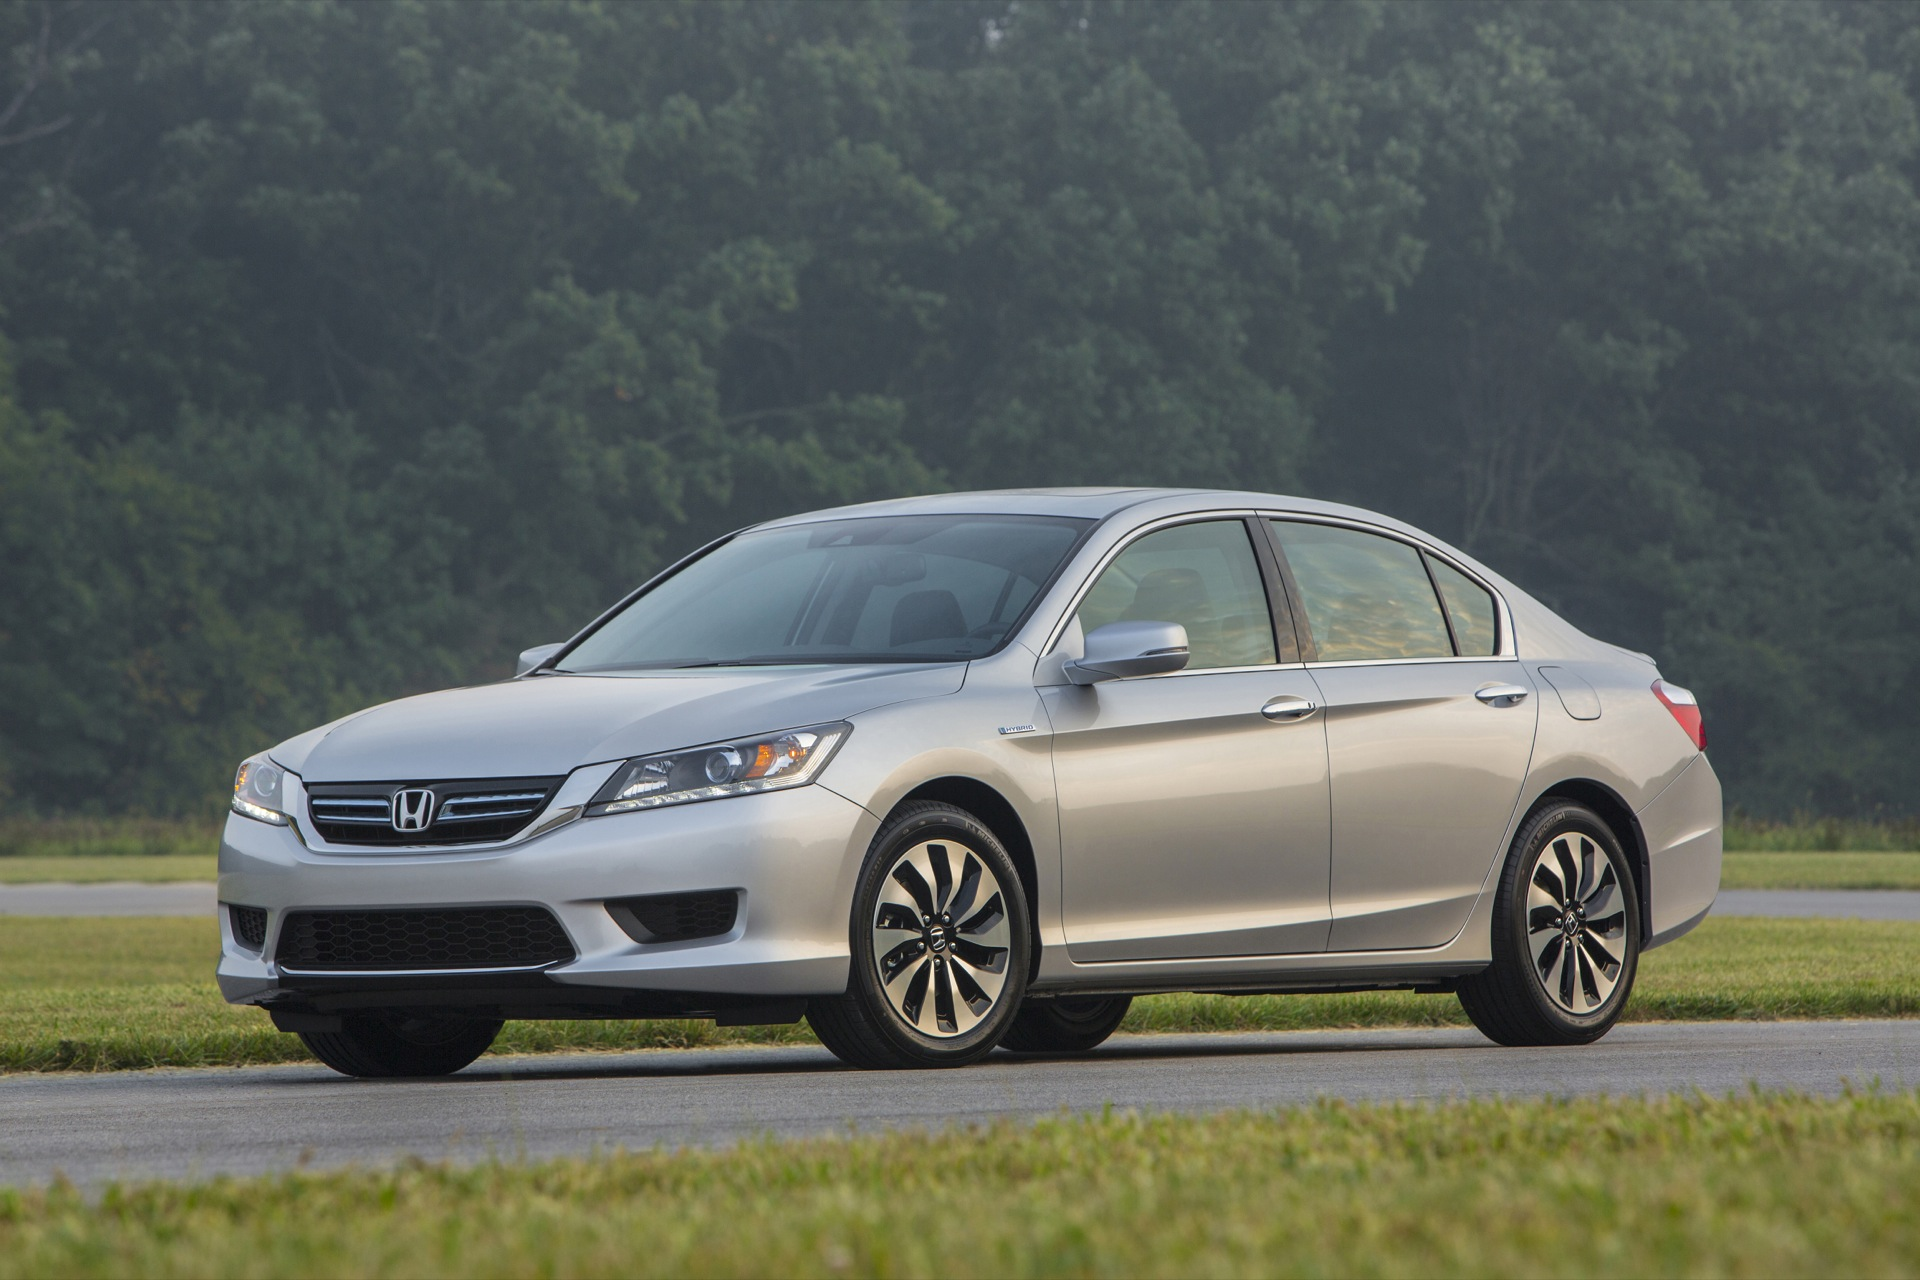 2015 Honda Accord Sedan Review Ratings Specs Prices